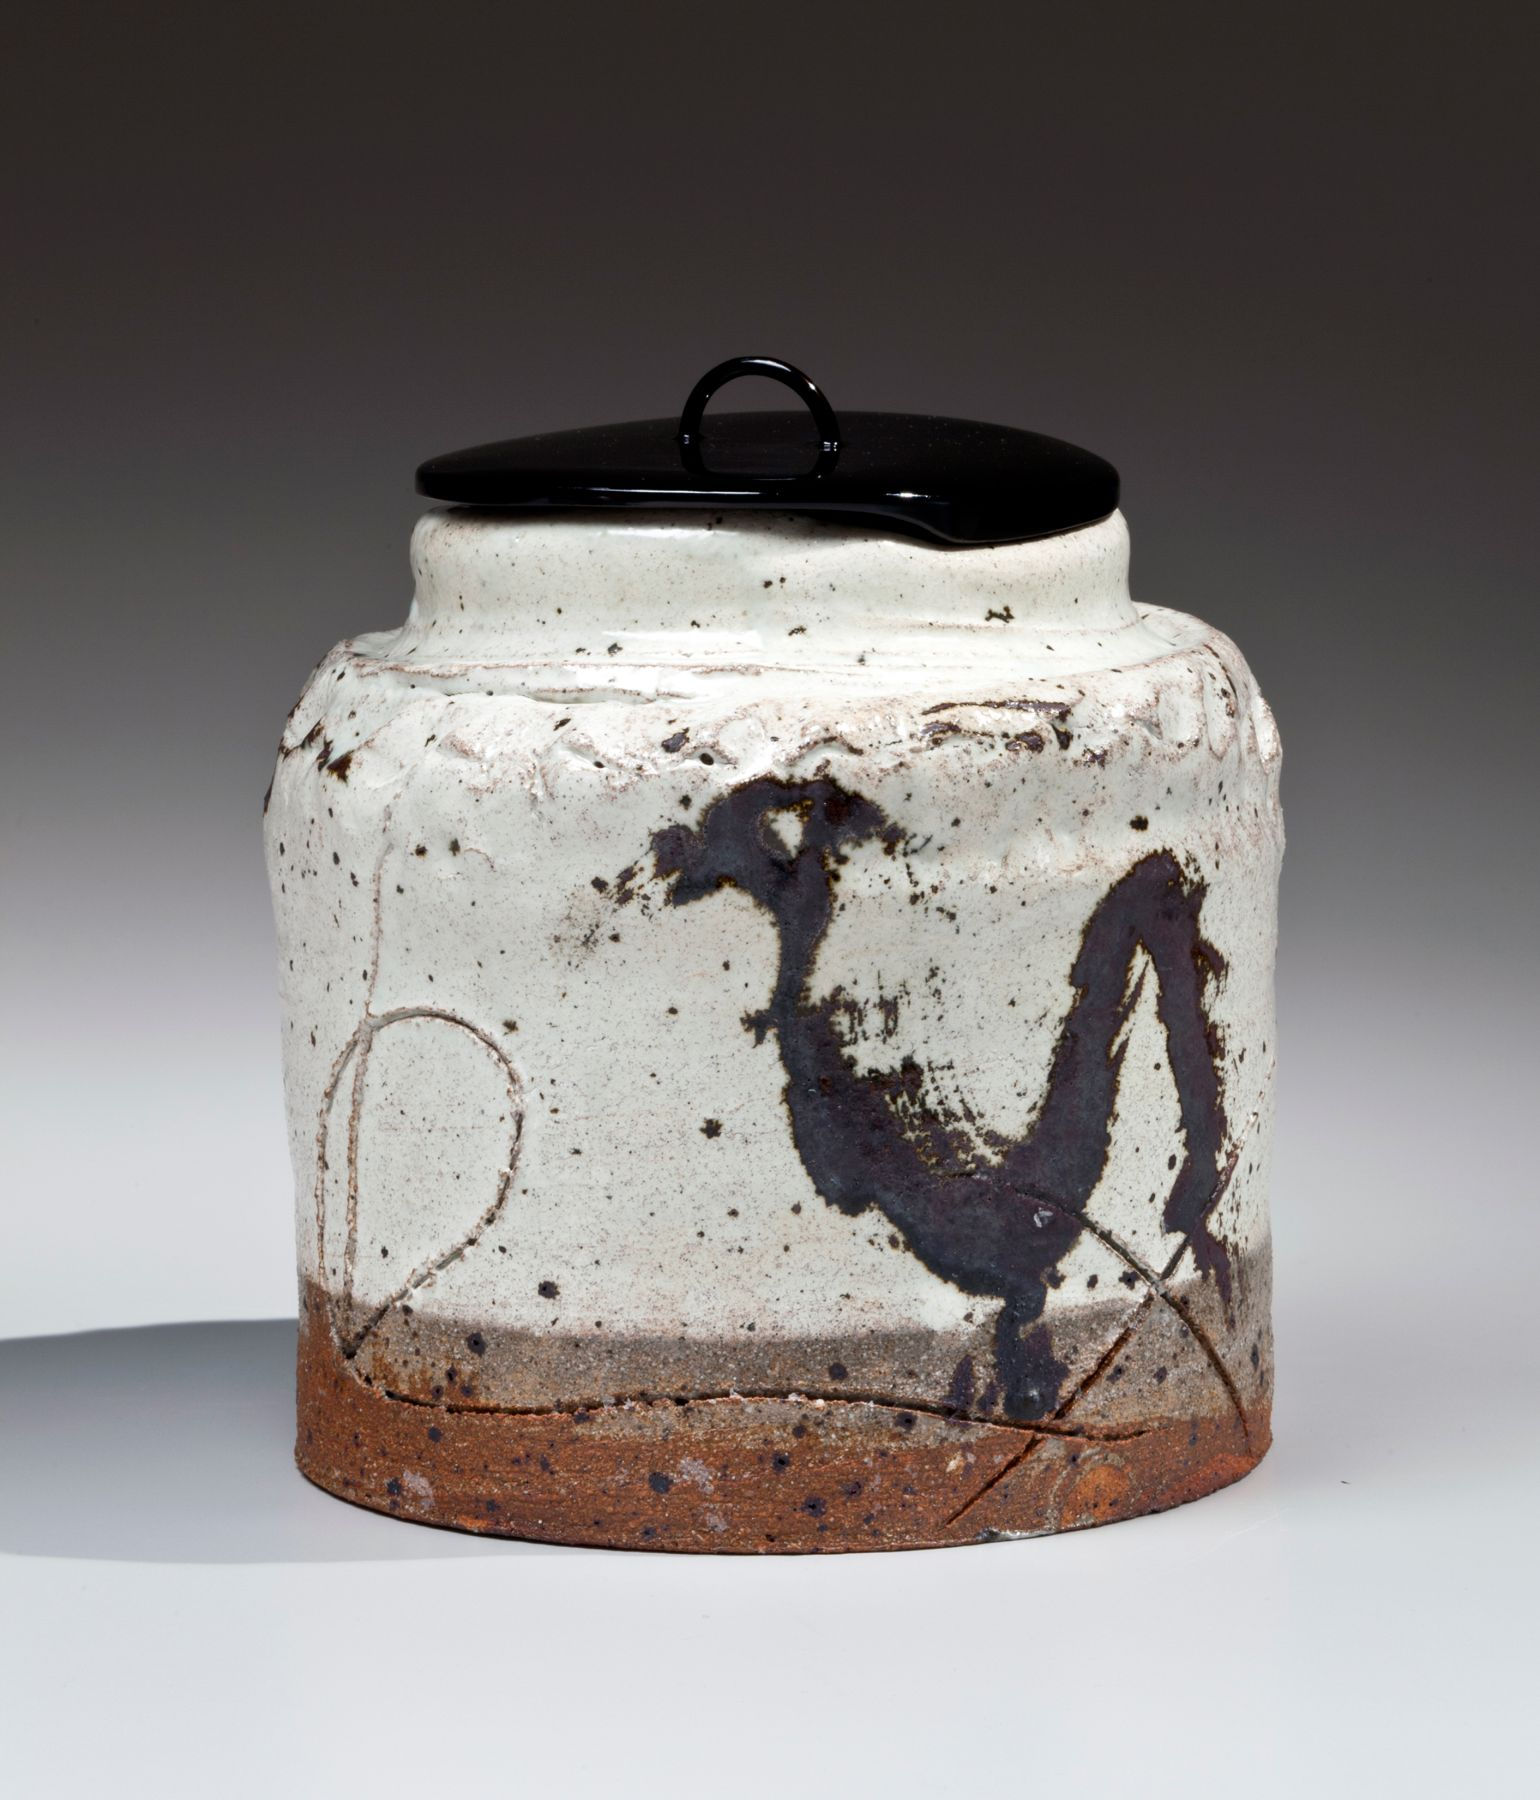 Koie, Ryoji, Koie Ryoji, contemporary, ceramics, Japanese, pottery, clay, kohiki, glaze, waterjar, water jar, mizusashi, calligraphic, design, decoration, incised, iron, glaze, black, white, brown, lacquer, lid, stoneware, 2008